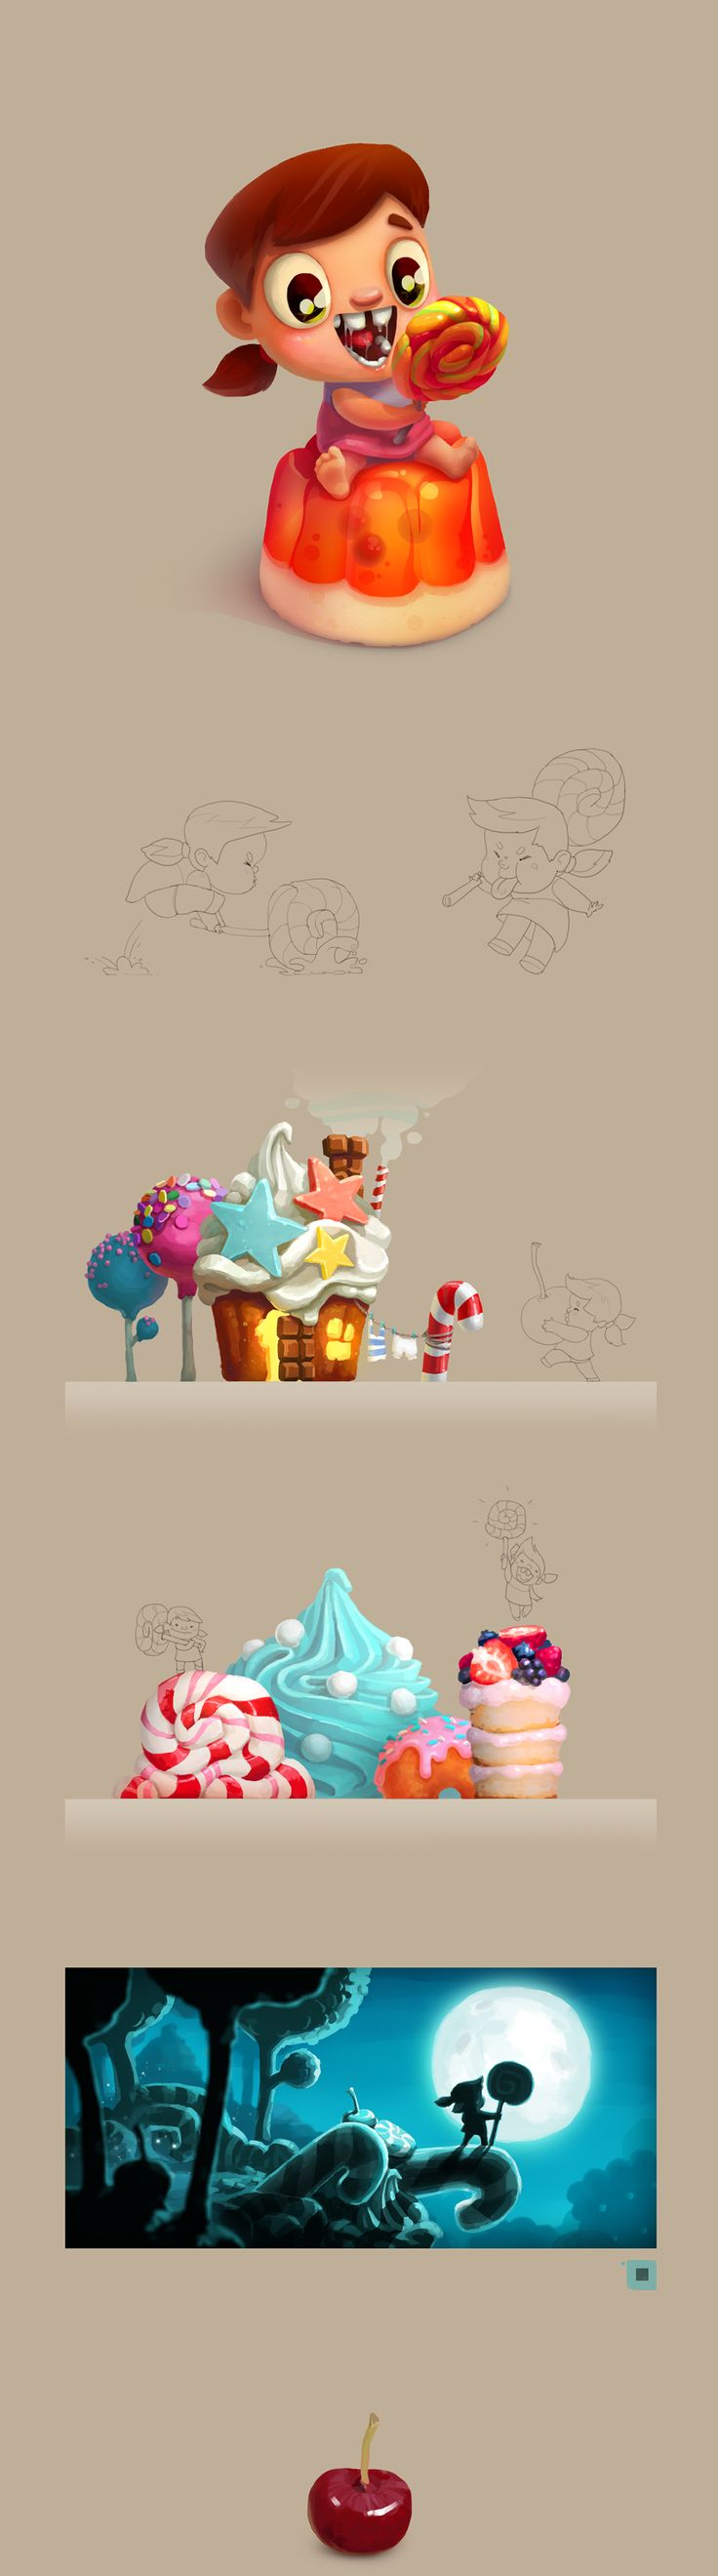 Sweet-tooth on Behance